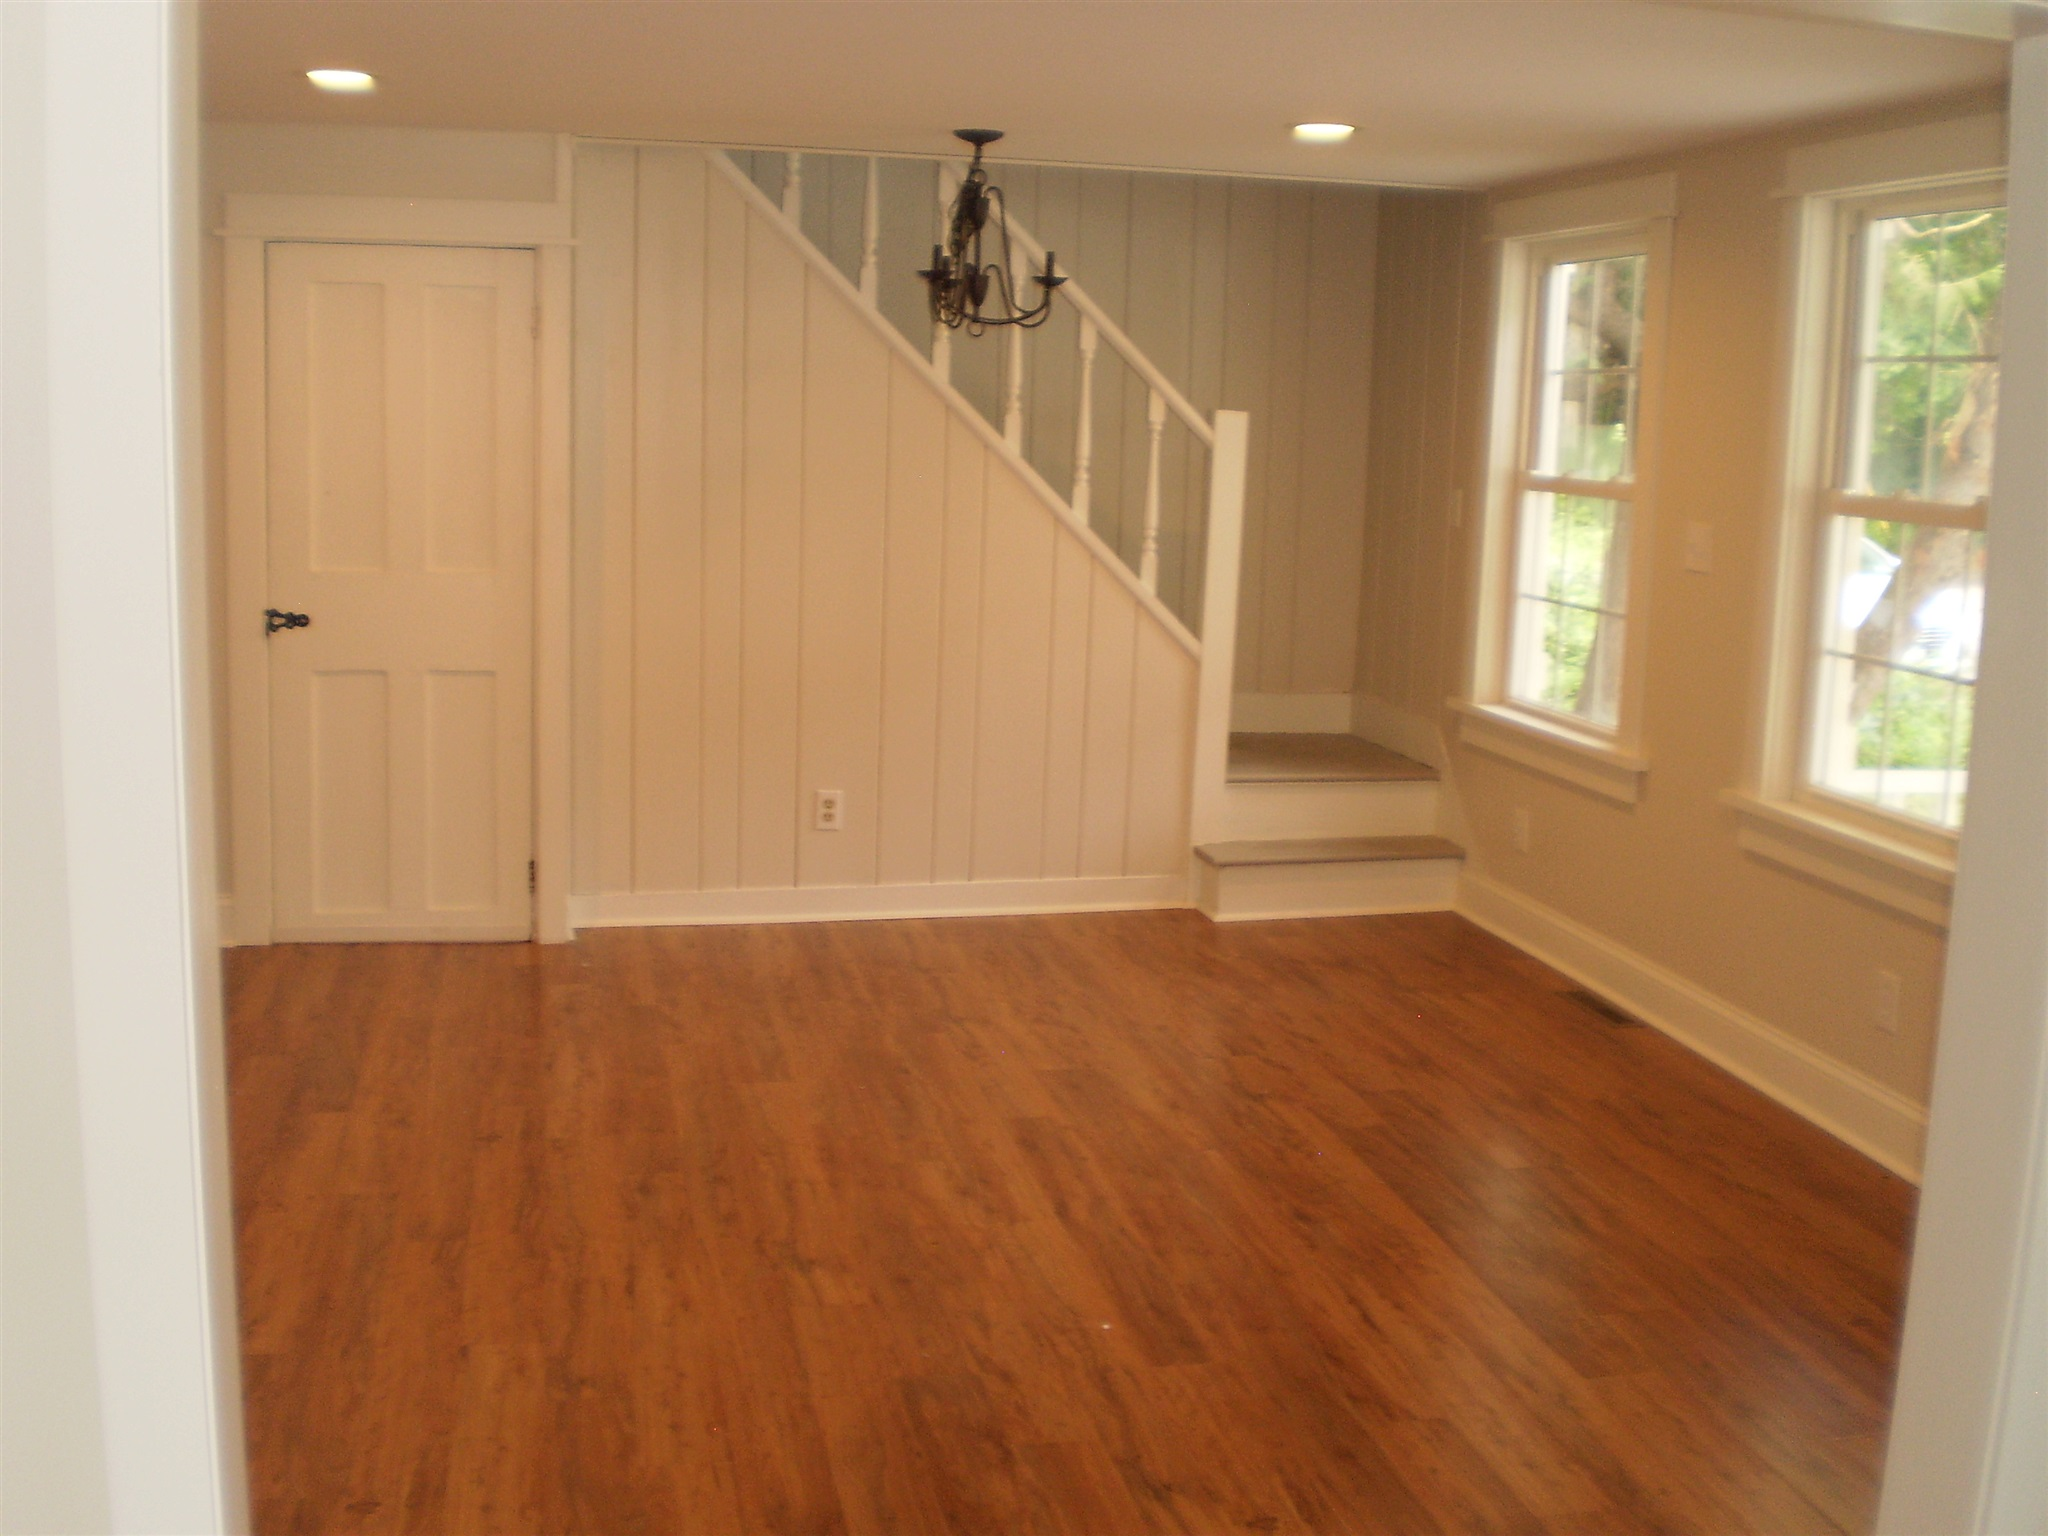 9 Cherry St In Kingsbury Ny Listed For 139 999 00 By